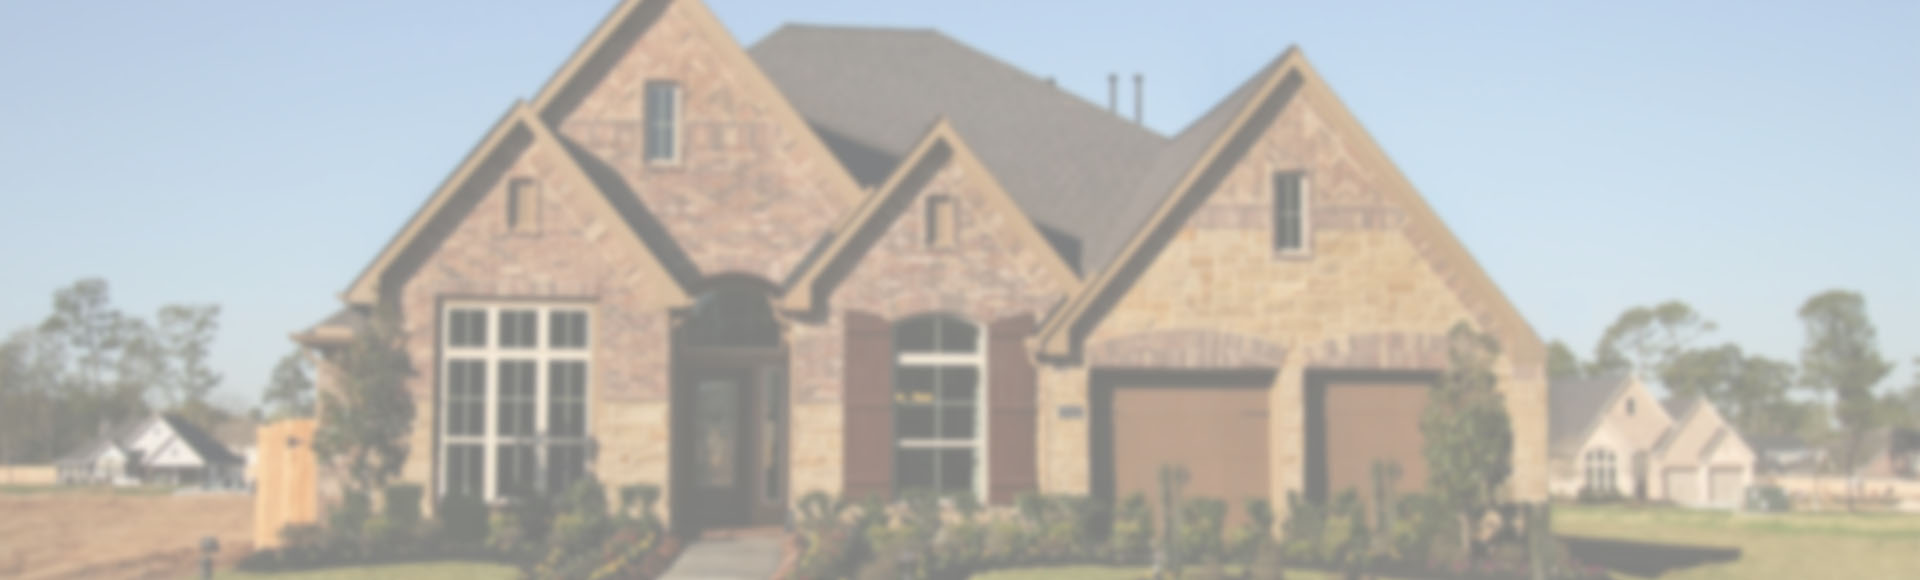 Buying Homes for sale in the Katy area